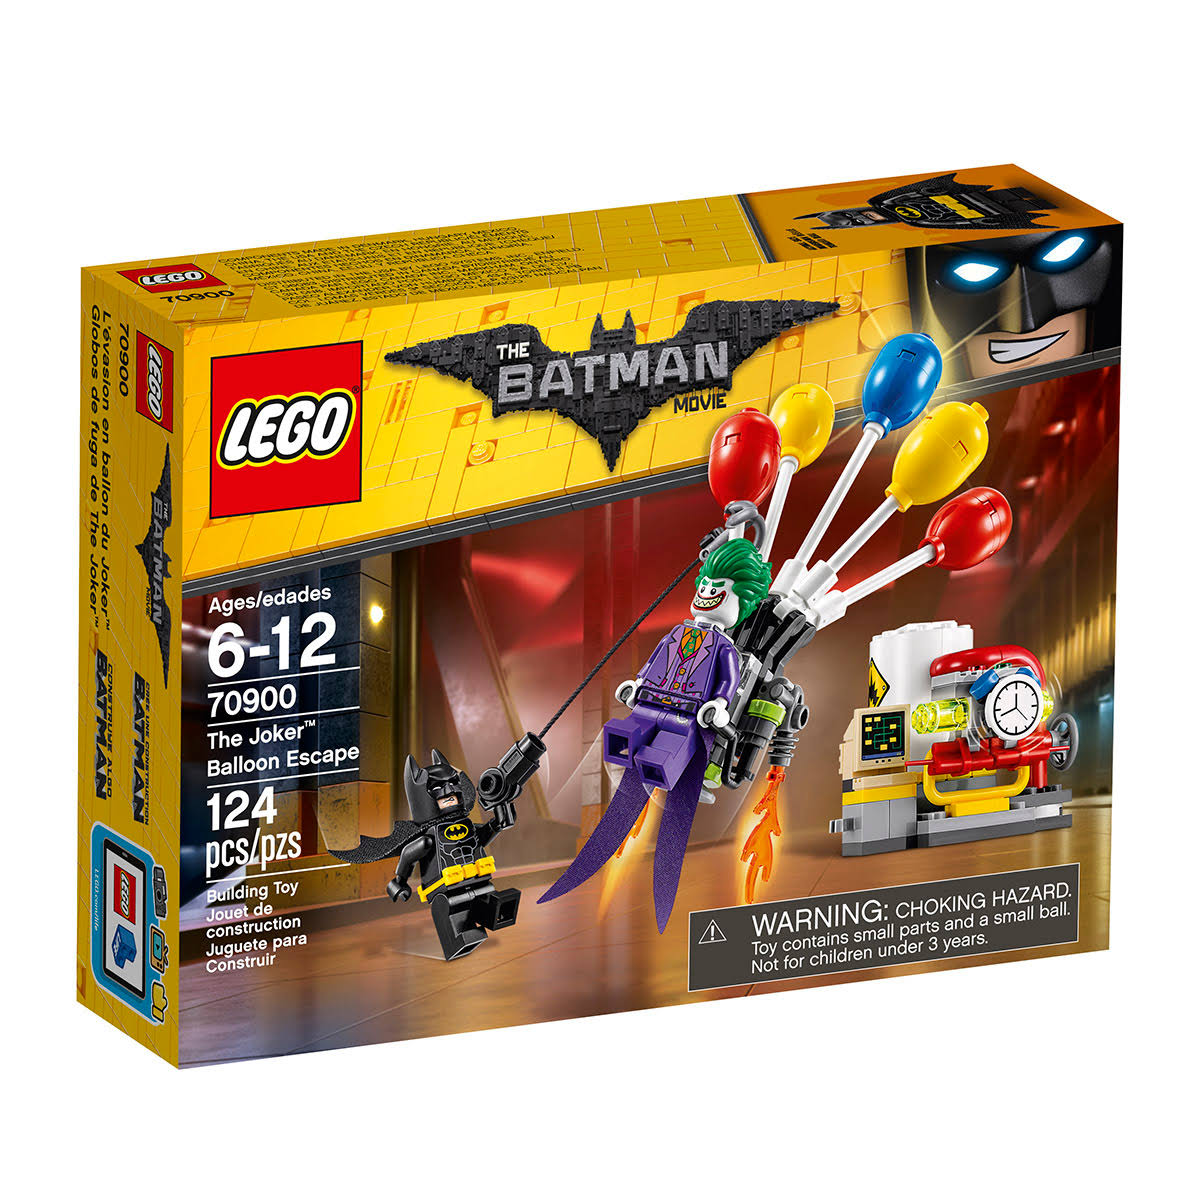 Lego Batman Movie The Joker Balloon Escape Playset